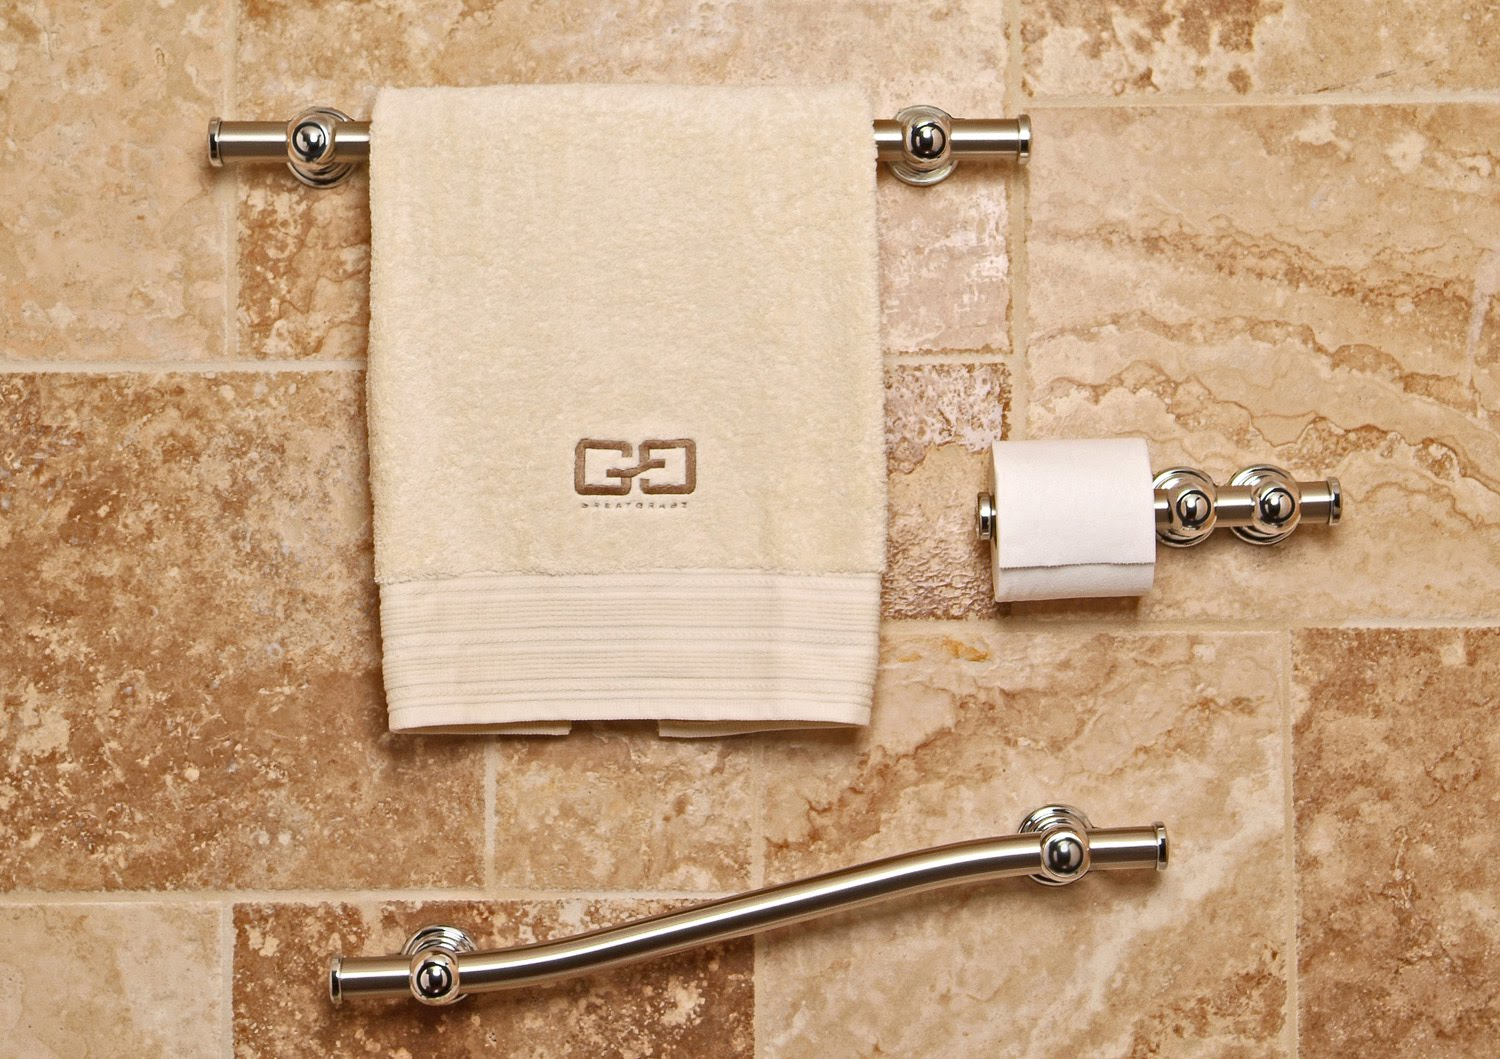 Are Your Grab Bar Selections Decorative Design Neutral Or Devoid Of Design